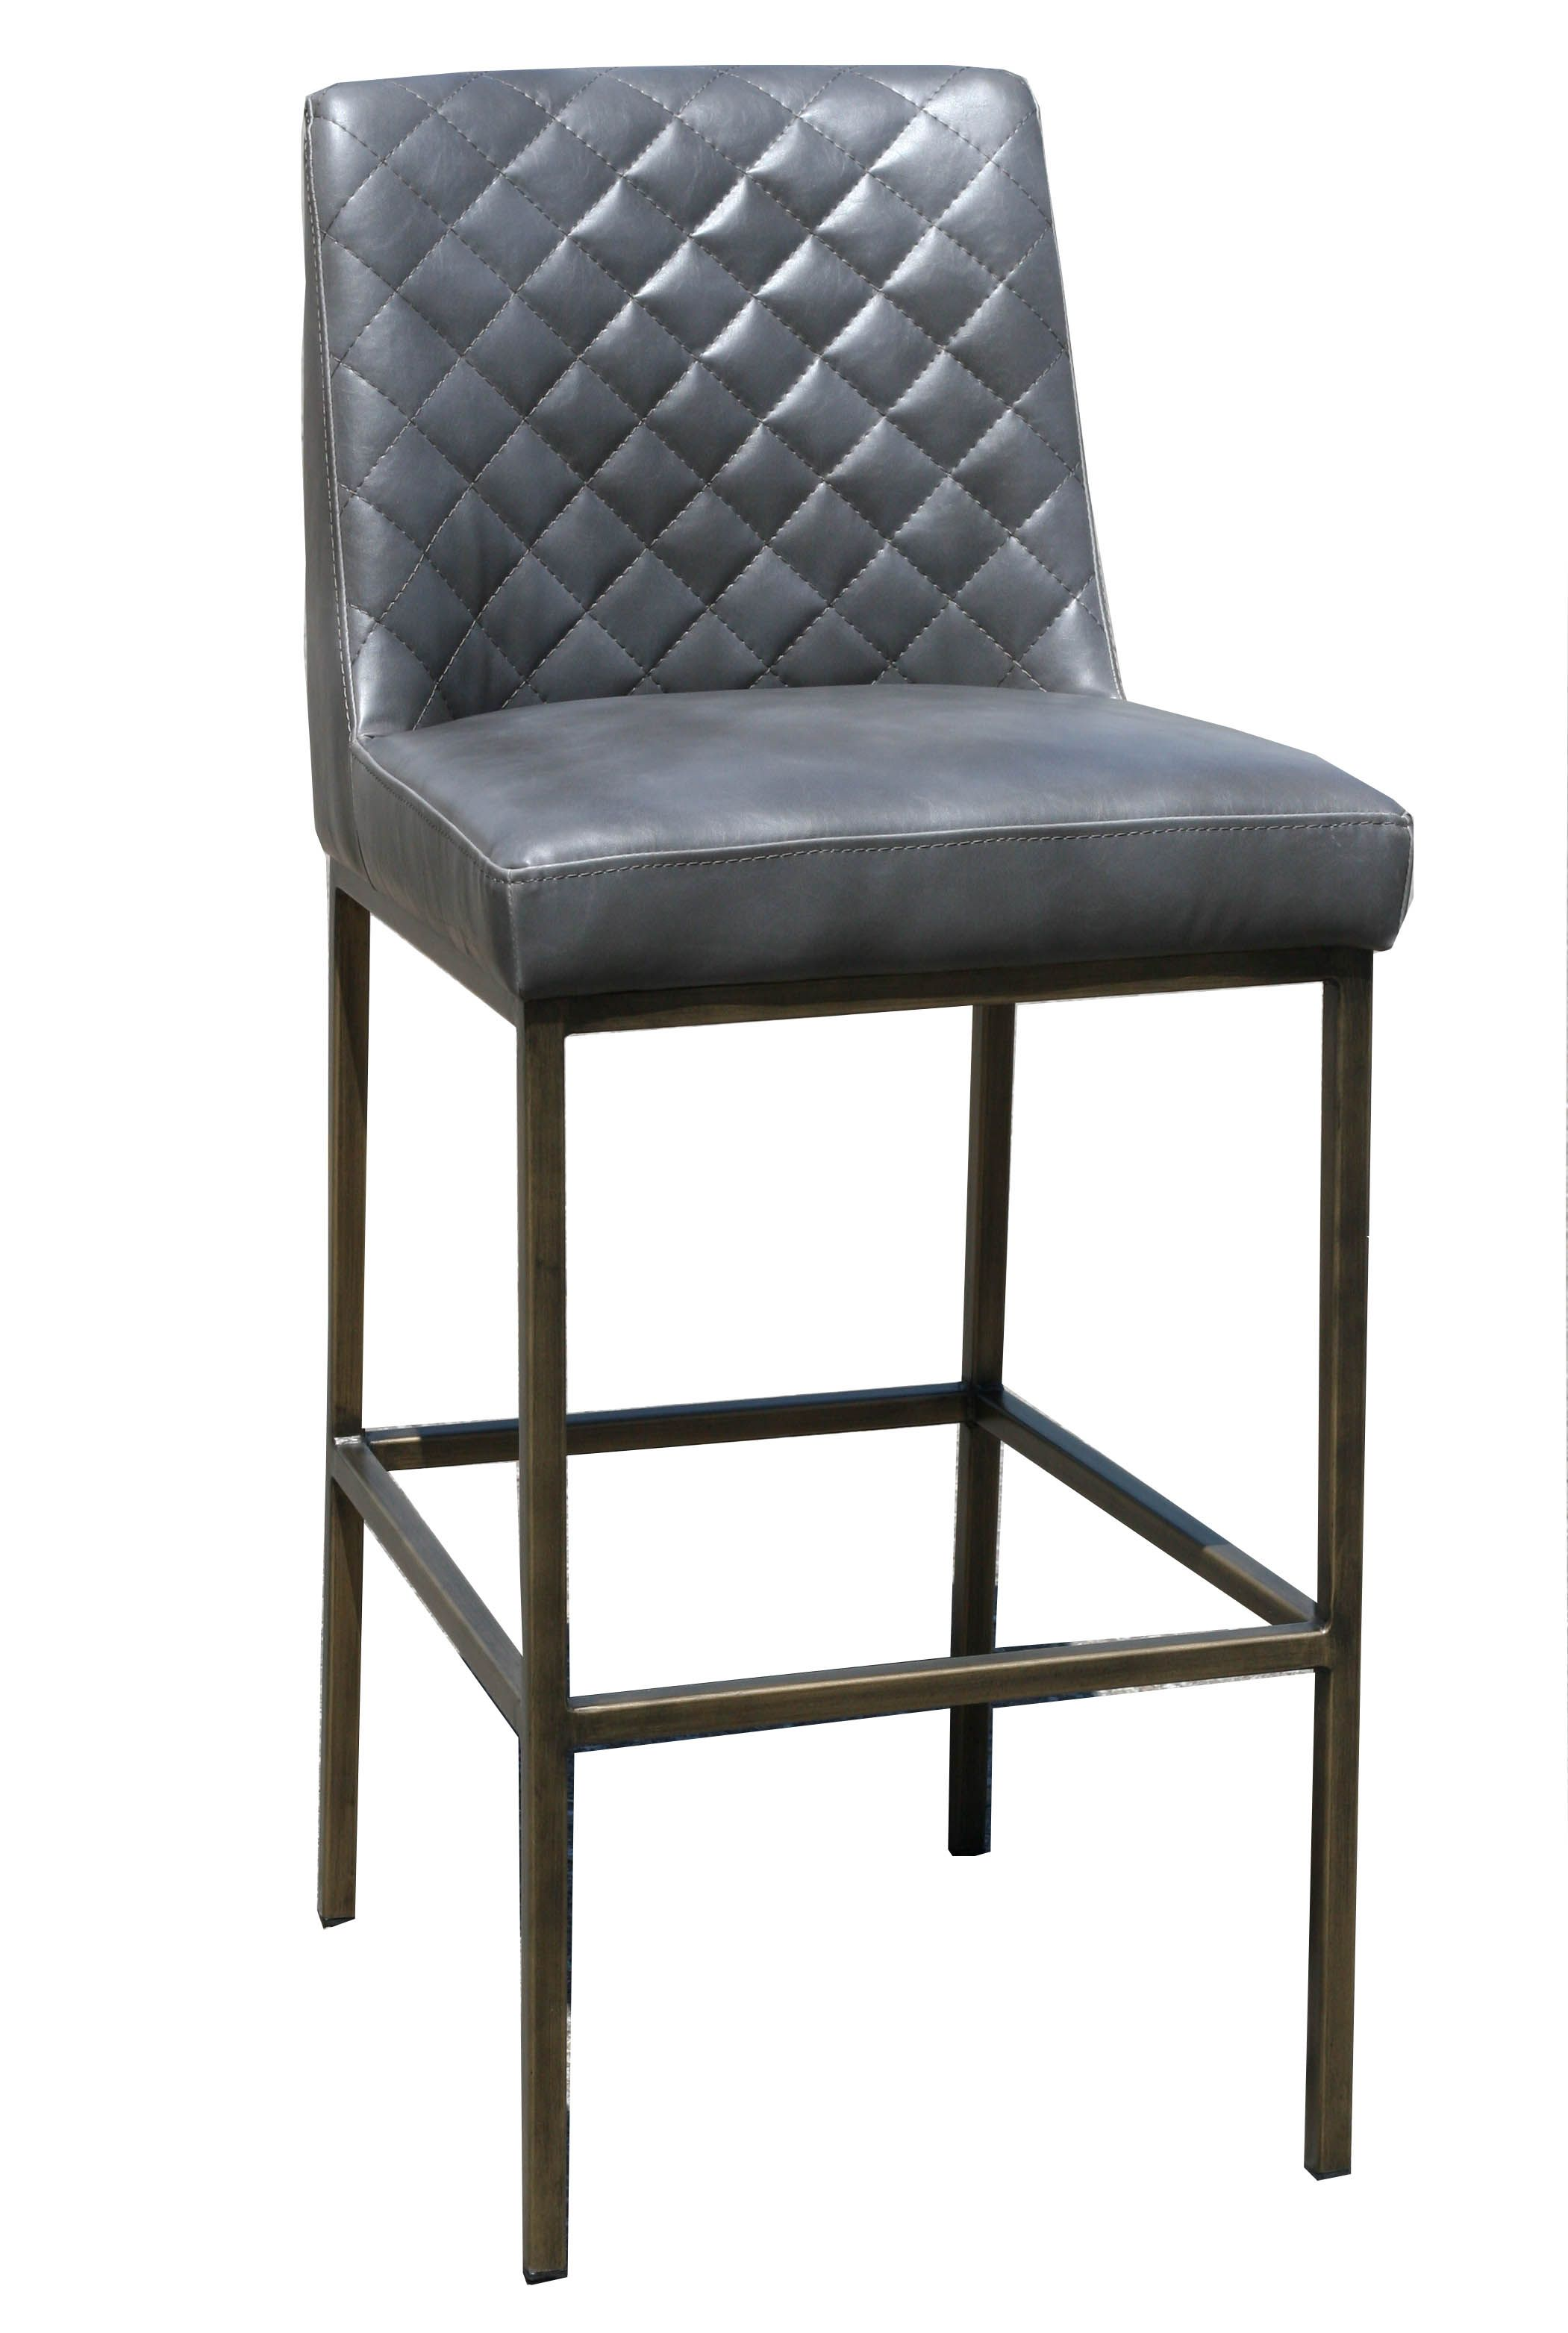 Vintage Kitchen Bar Stools Inspiration Grey Leather Counter Stool With Bronze Steel Frame R12 7927 7